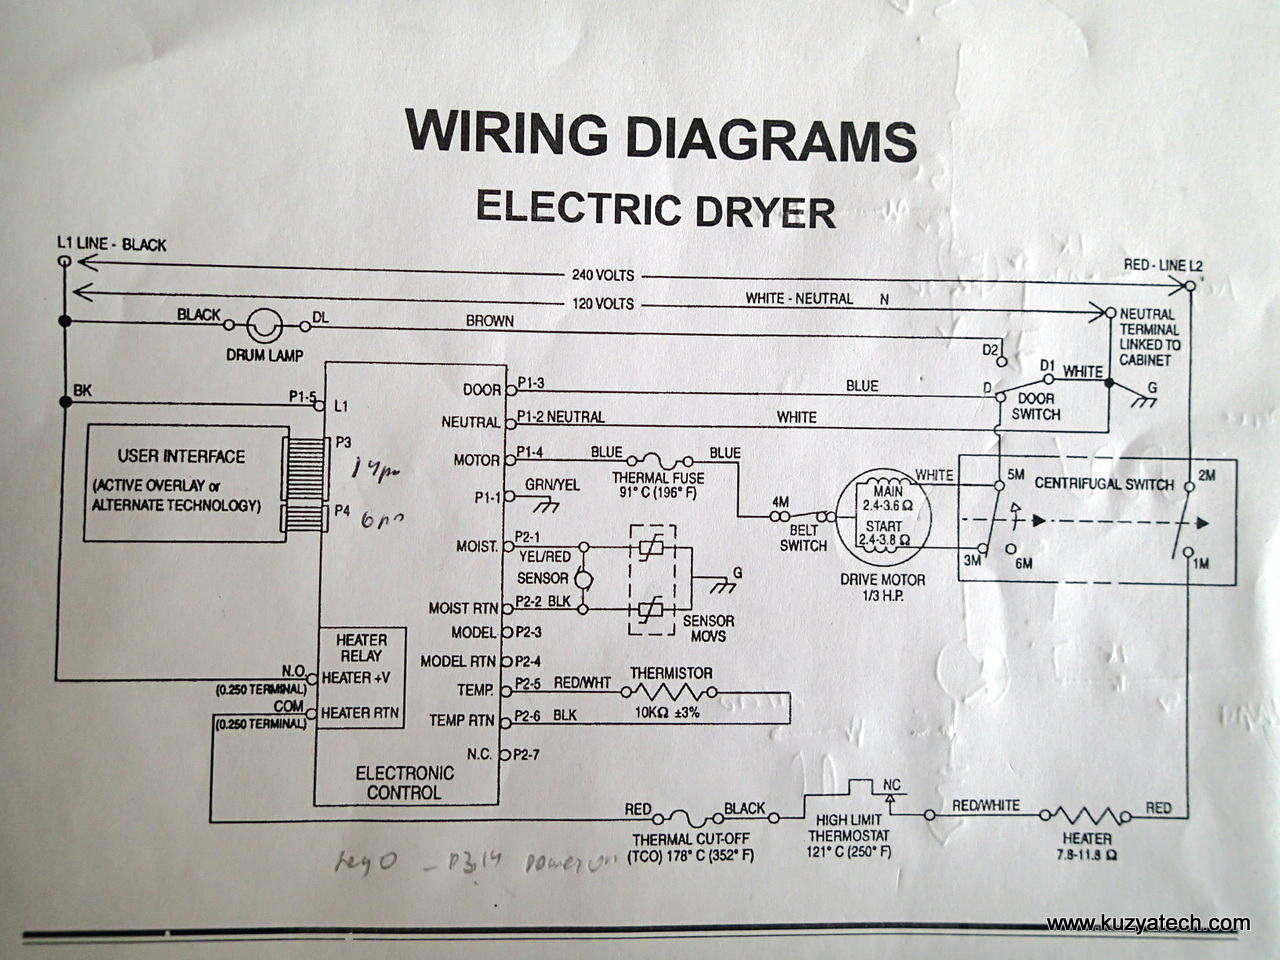 Whirlpool Dryer Plug Wiring Diagram from kuzyatech.com